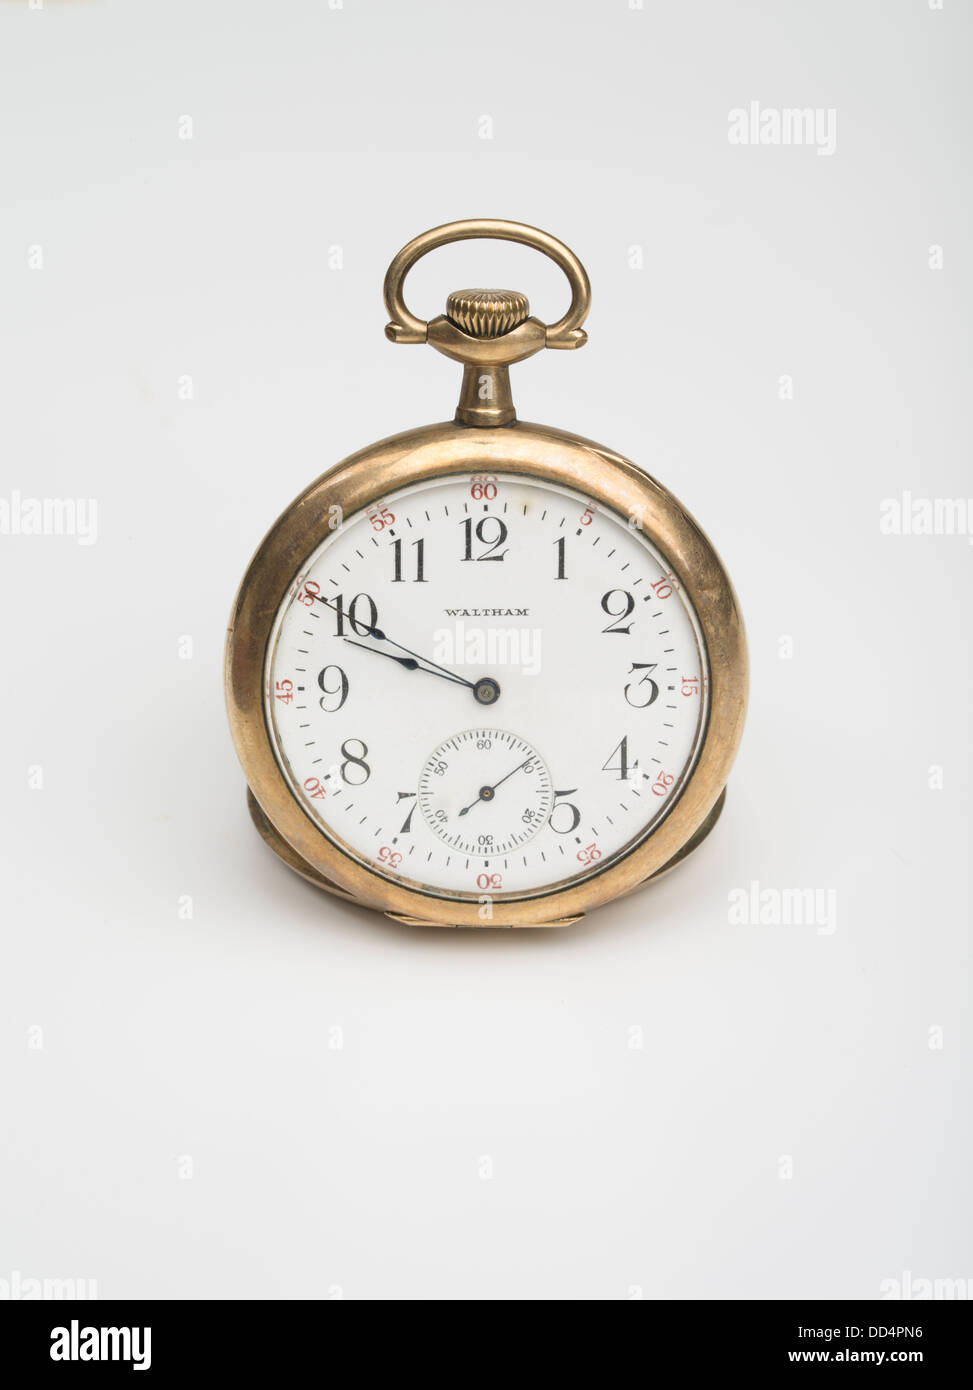 Pocket Watch by Waltham Watch Company  aka American Waltham Watch Co. created the first successful industrialized - Stock Image